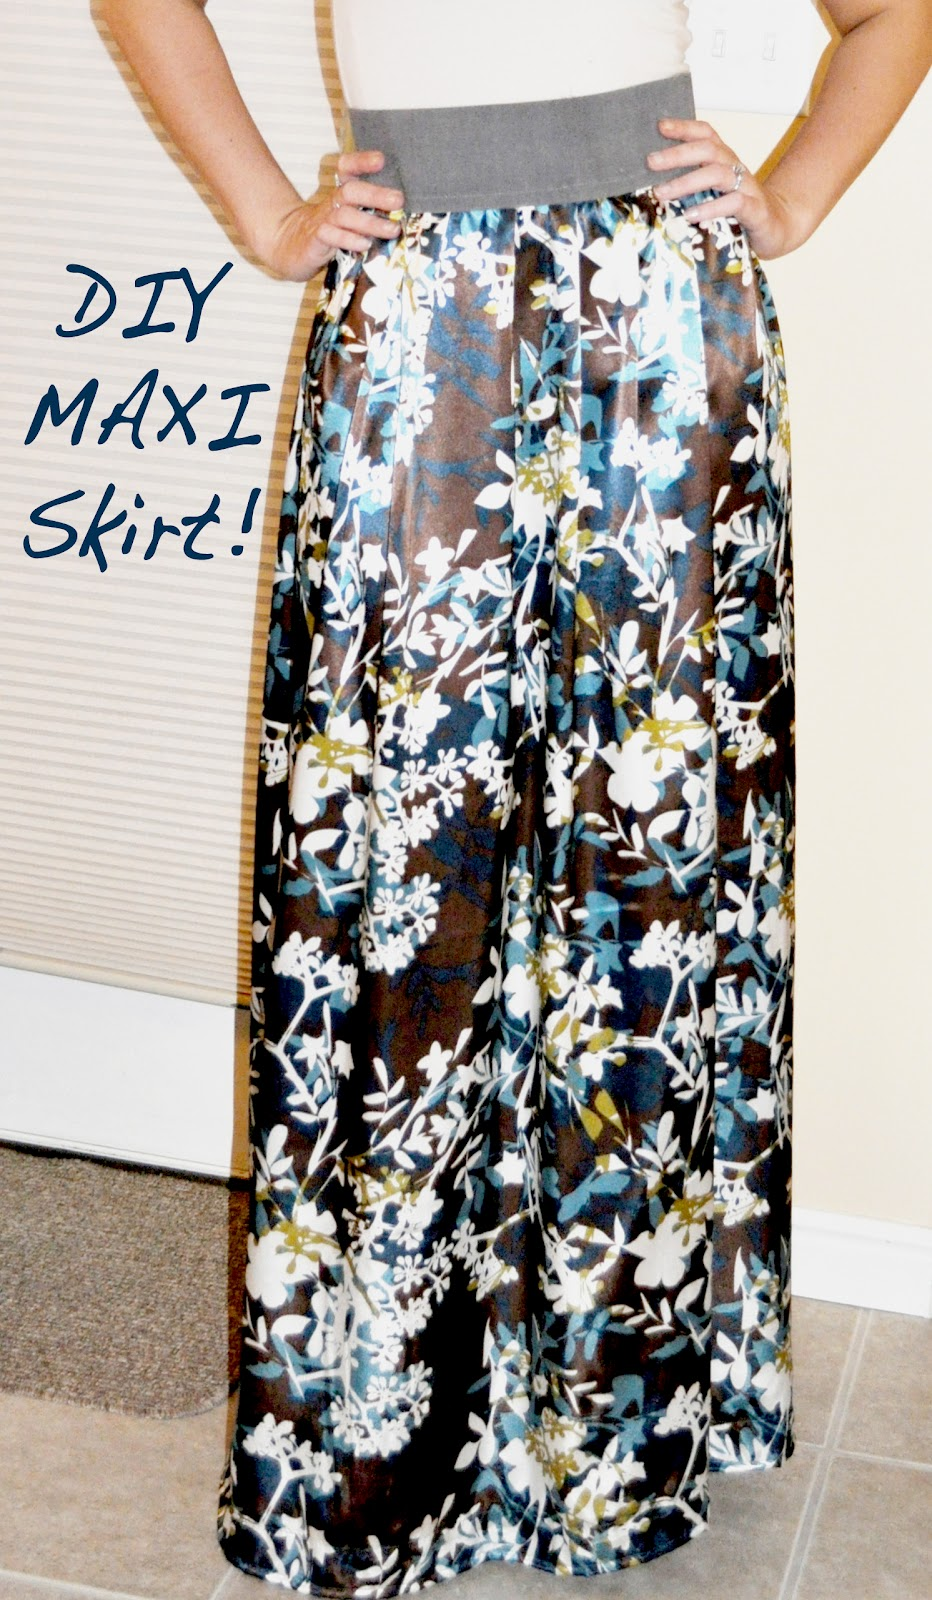 dresses fashion trends 2016 2017 page 7